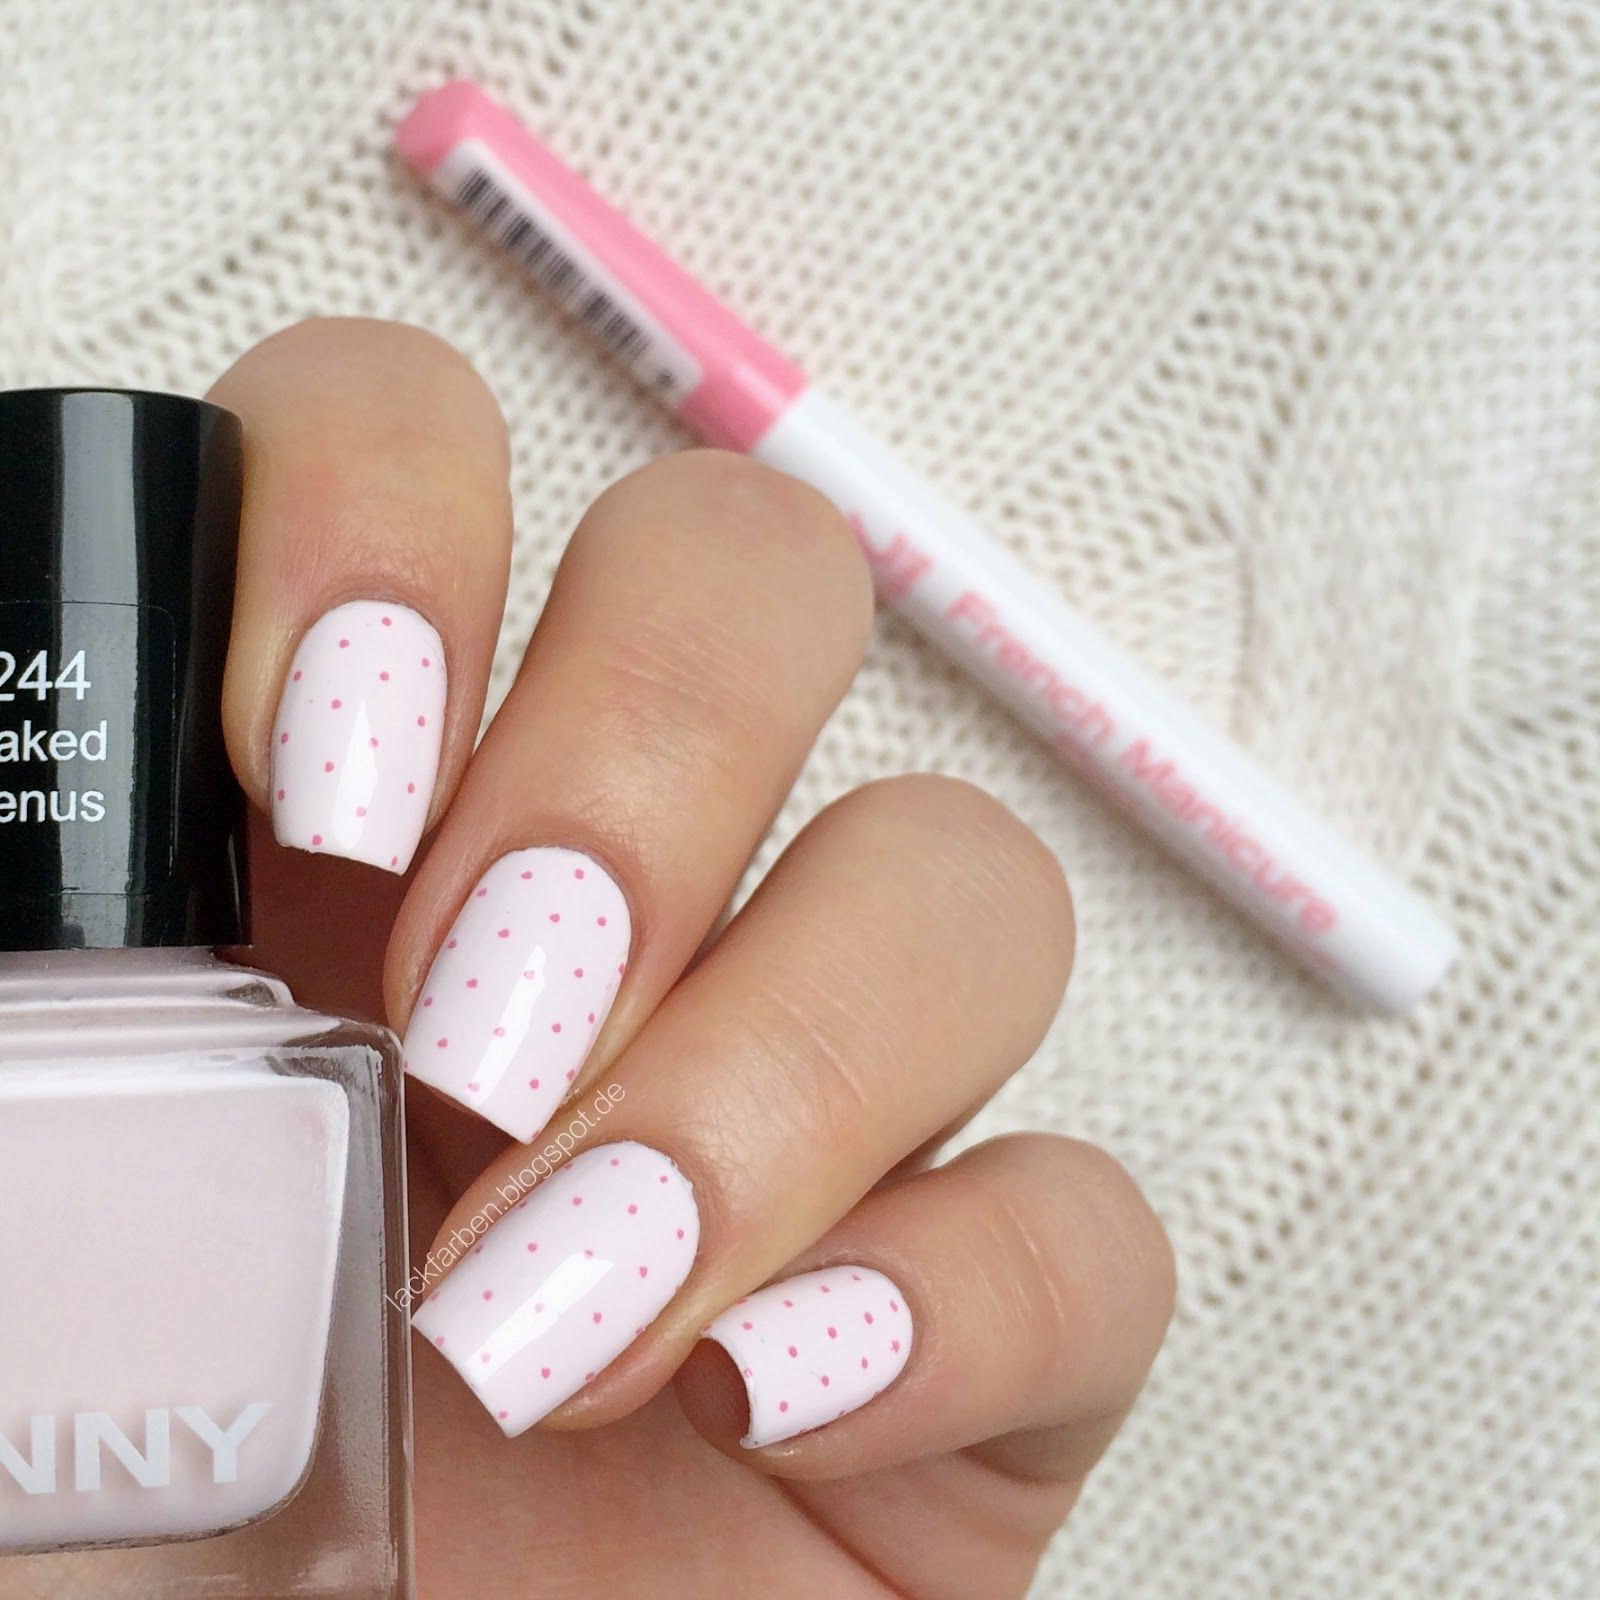 Anny - Naked Venus RdL Young French Manicure Pen @Lackfarben ...